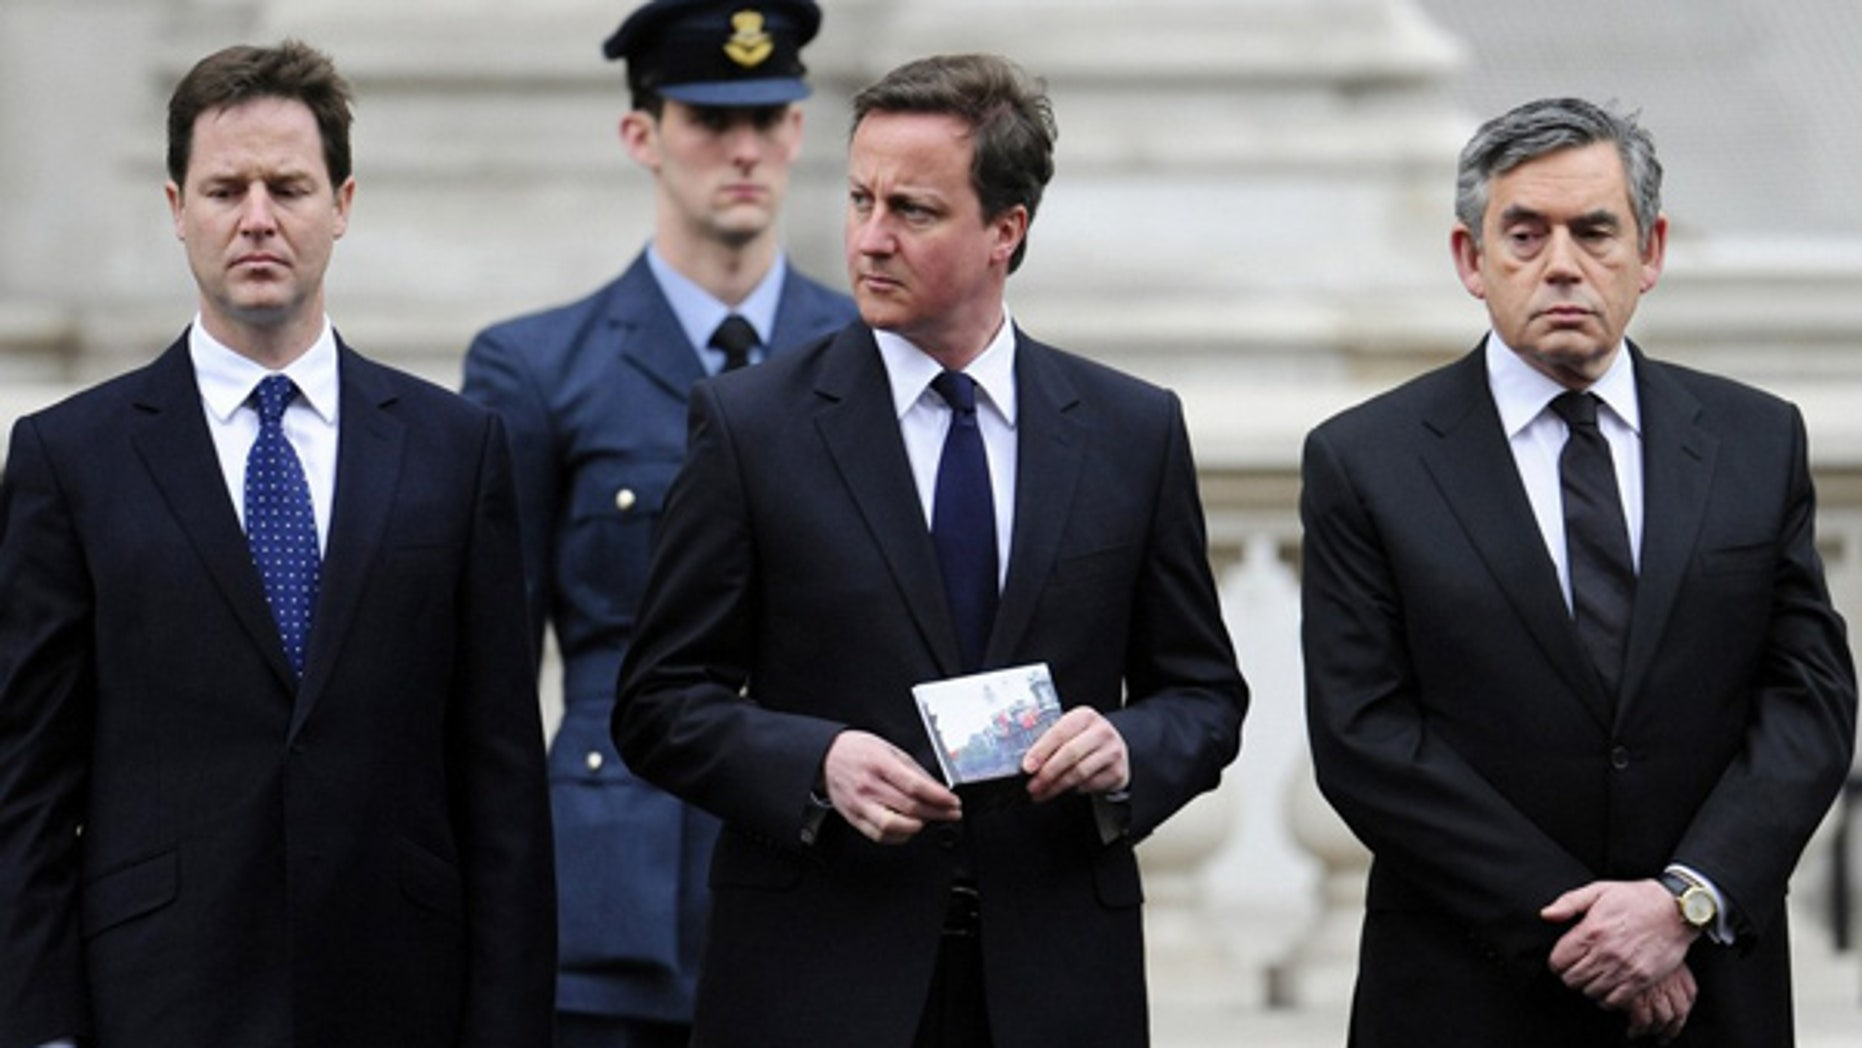 May 8: Britain's Prime Minister Gordon Brown, right, stands with Conservative Party leader David Cameron, center, and Liberal Democrat leader Nick Clegg, left, during a Victory in Europe day ceremony in London.